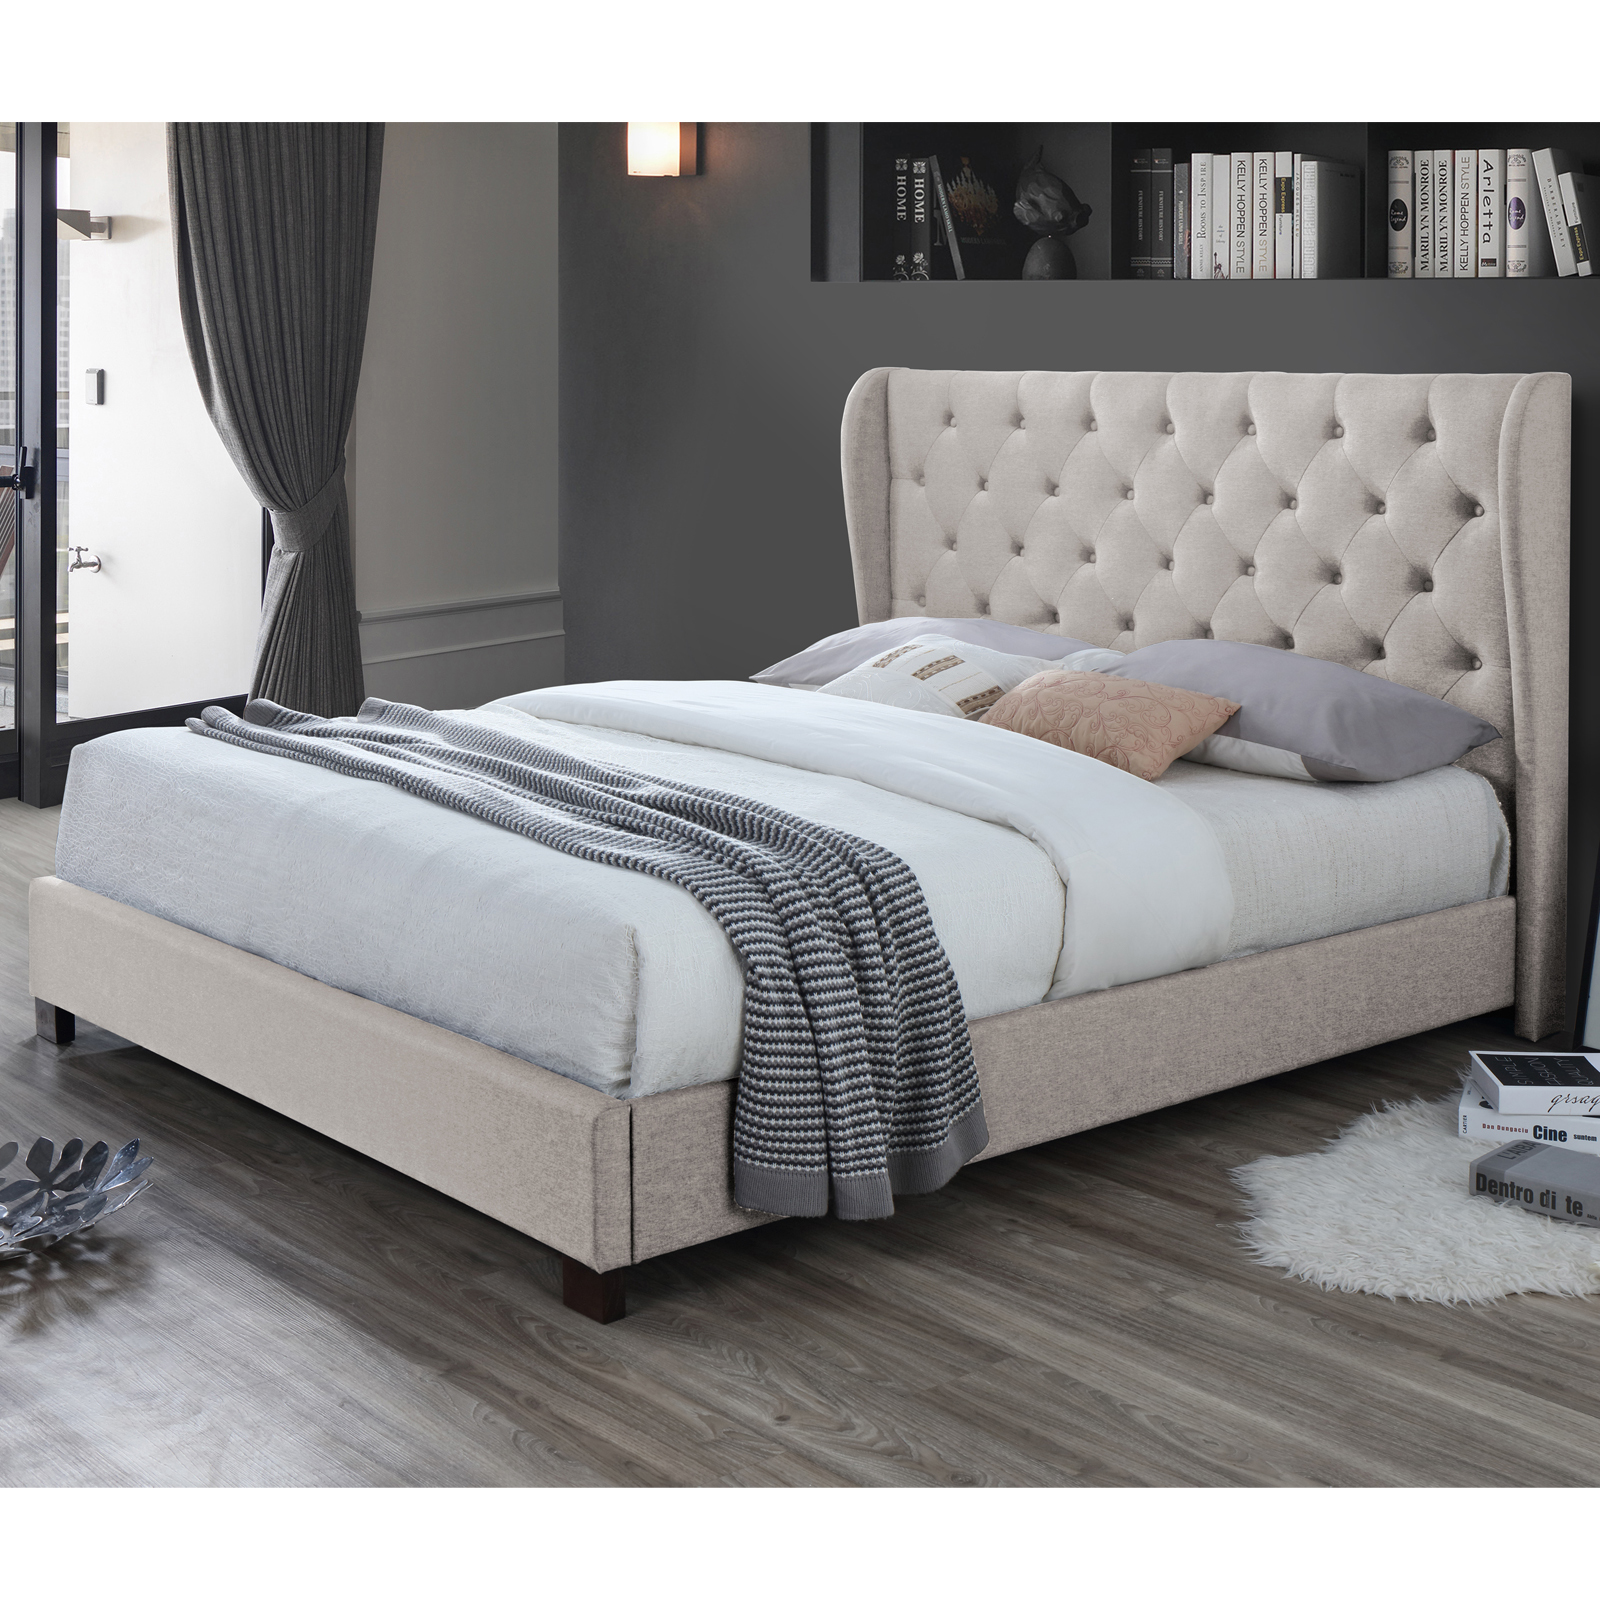 NEW Oat White Diamond Queen Bed Frame VIC Furniture Beds